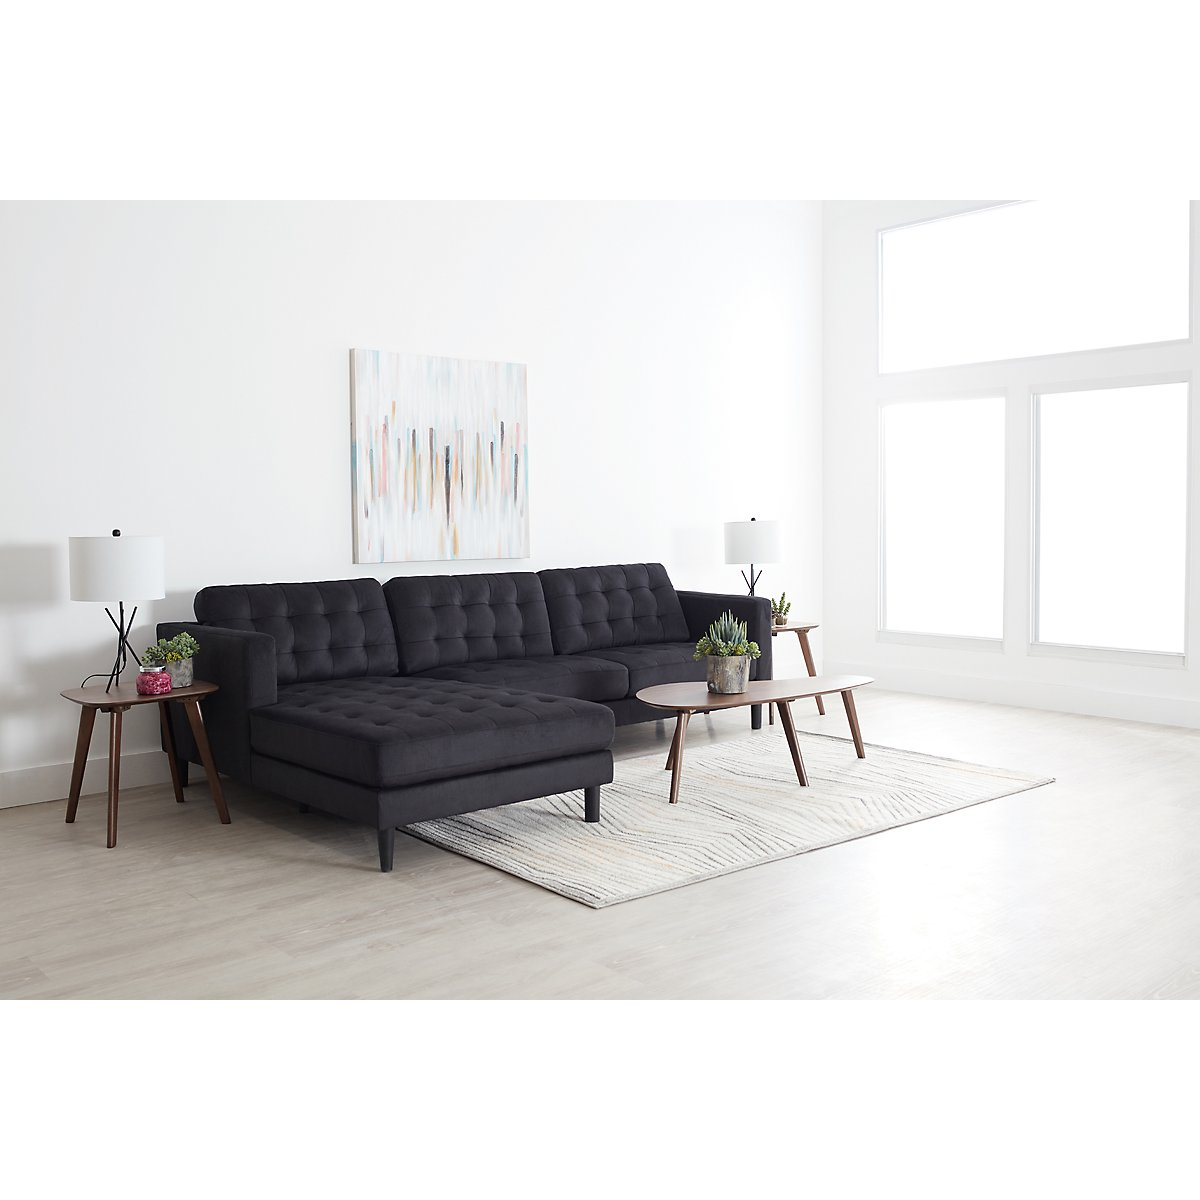 City Furniture: Shae Dark Gray Microfiber 6-Piece Living Room Package